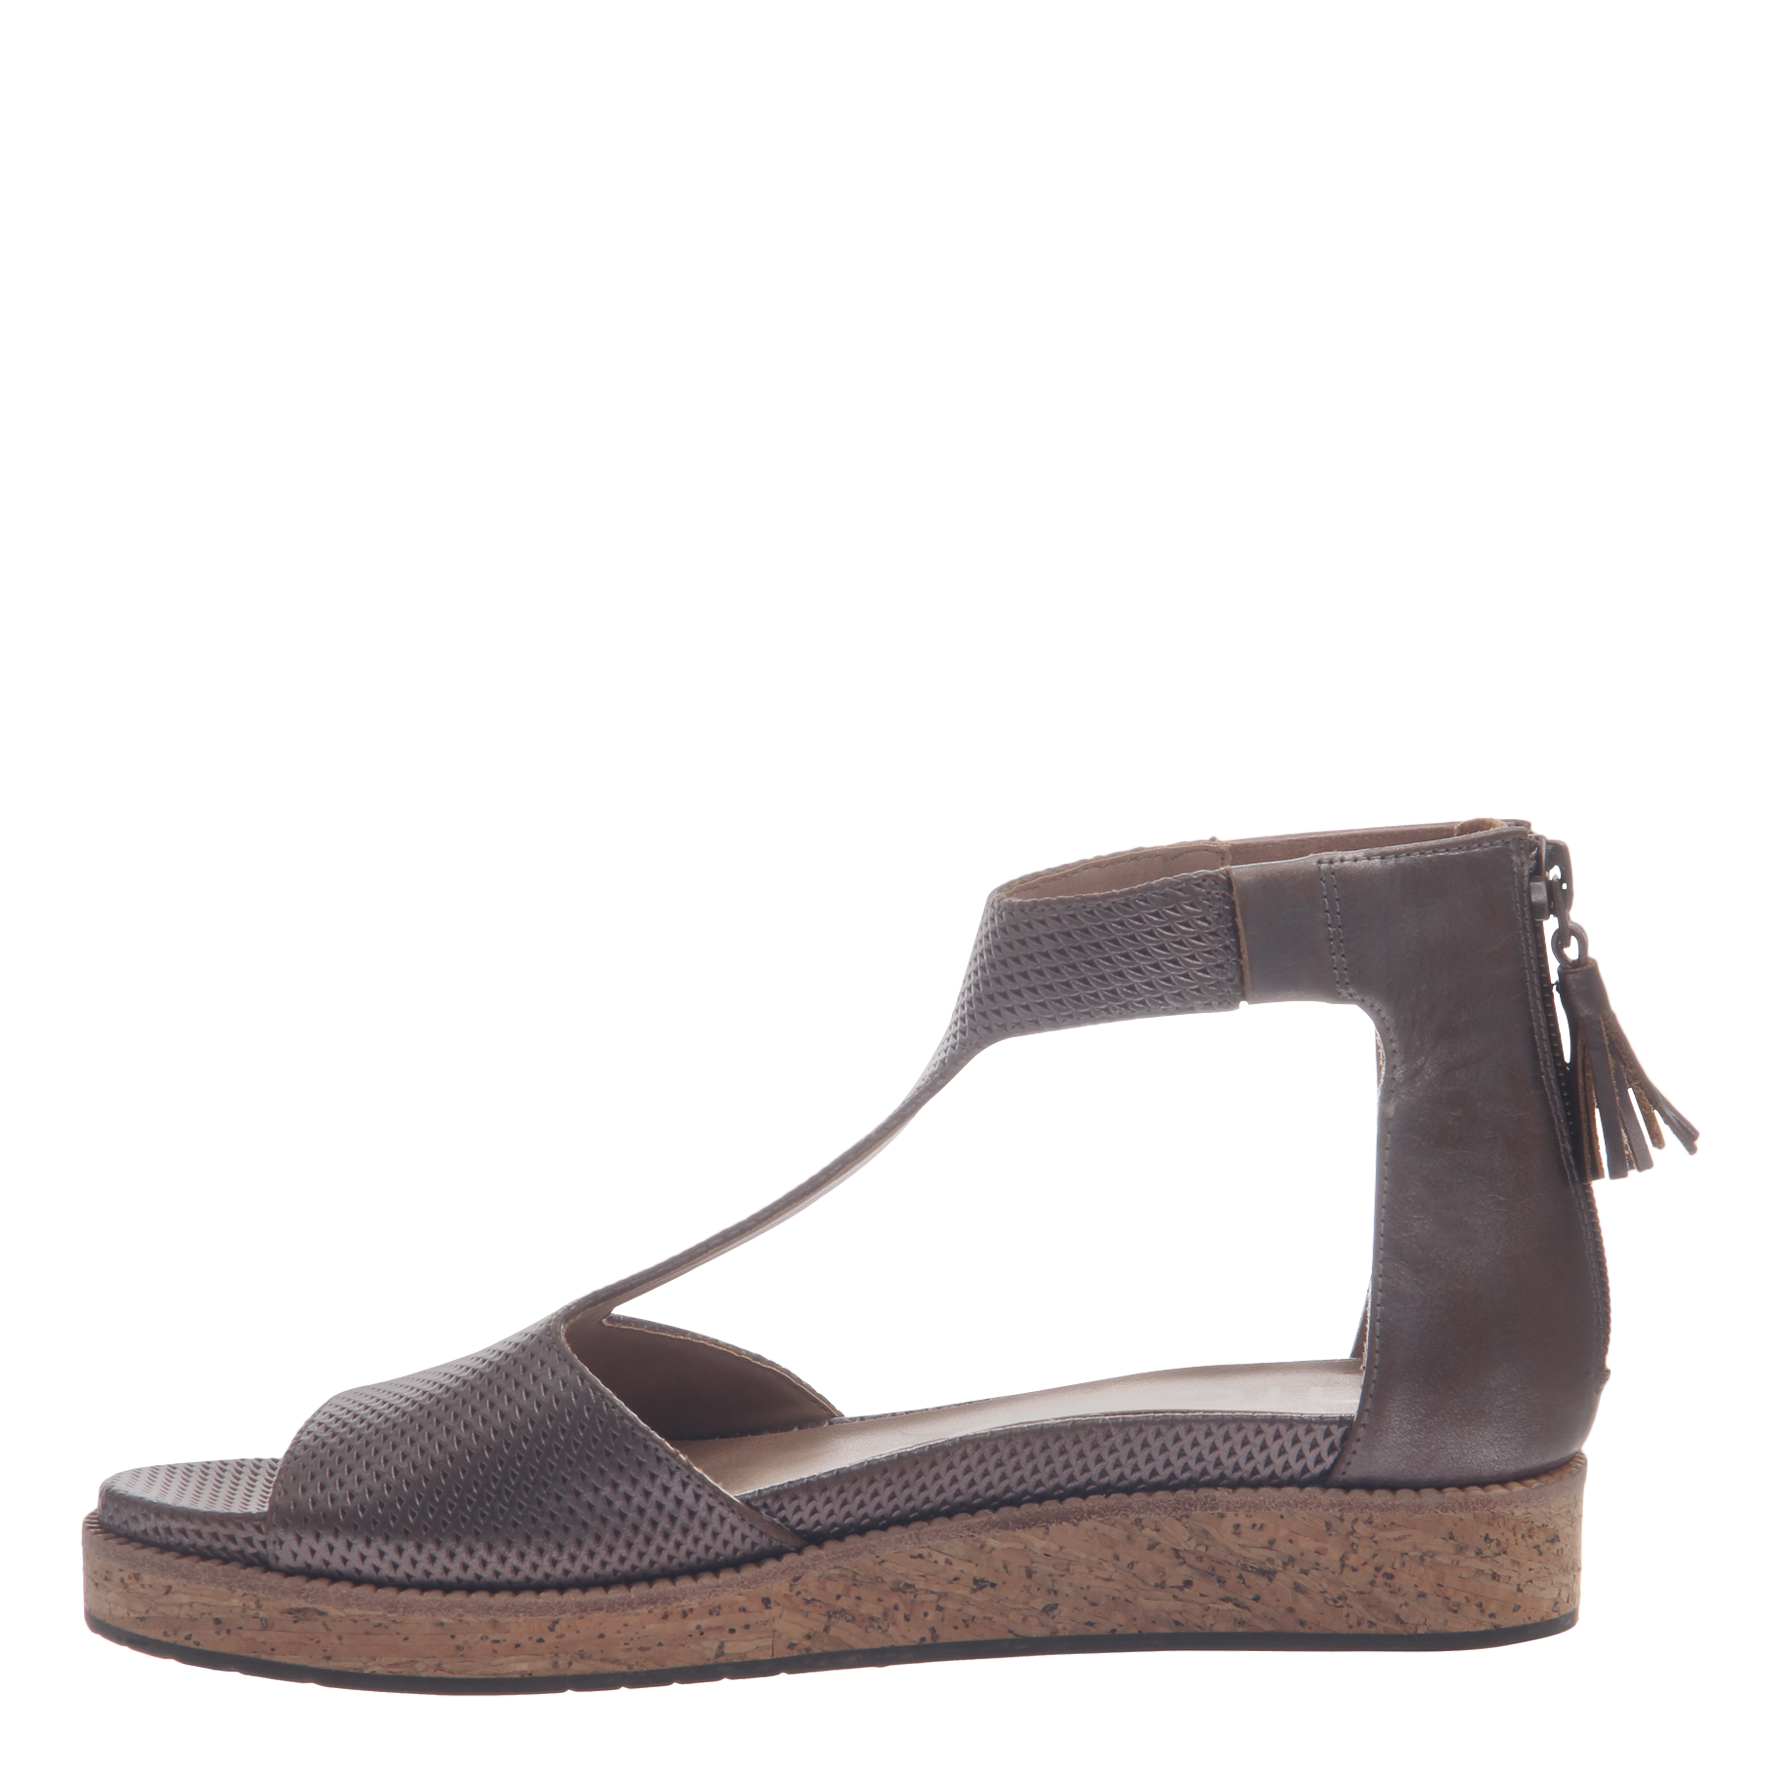 Nicole womens flat sandal lilou in pewter inside view